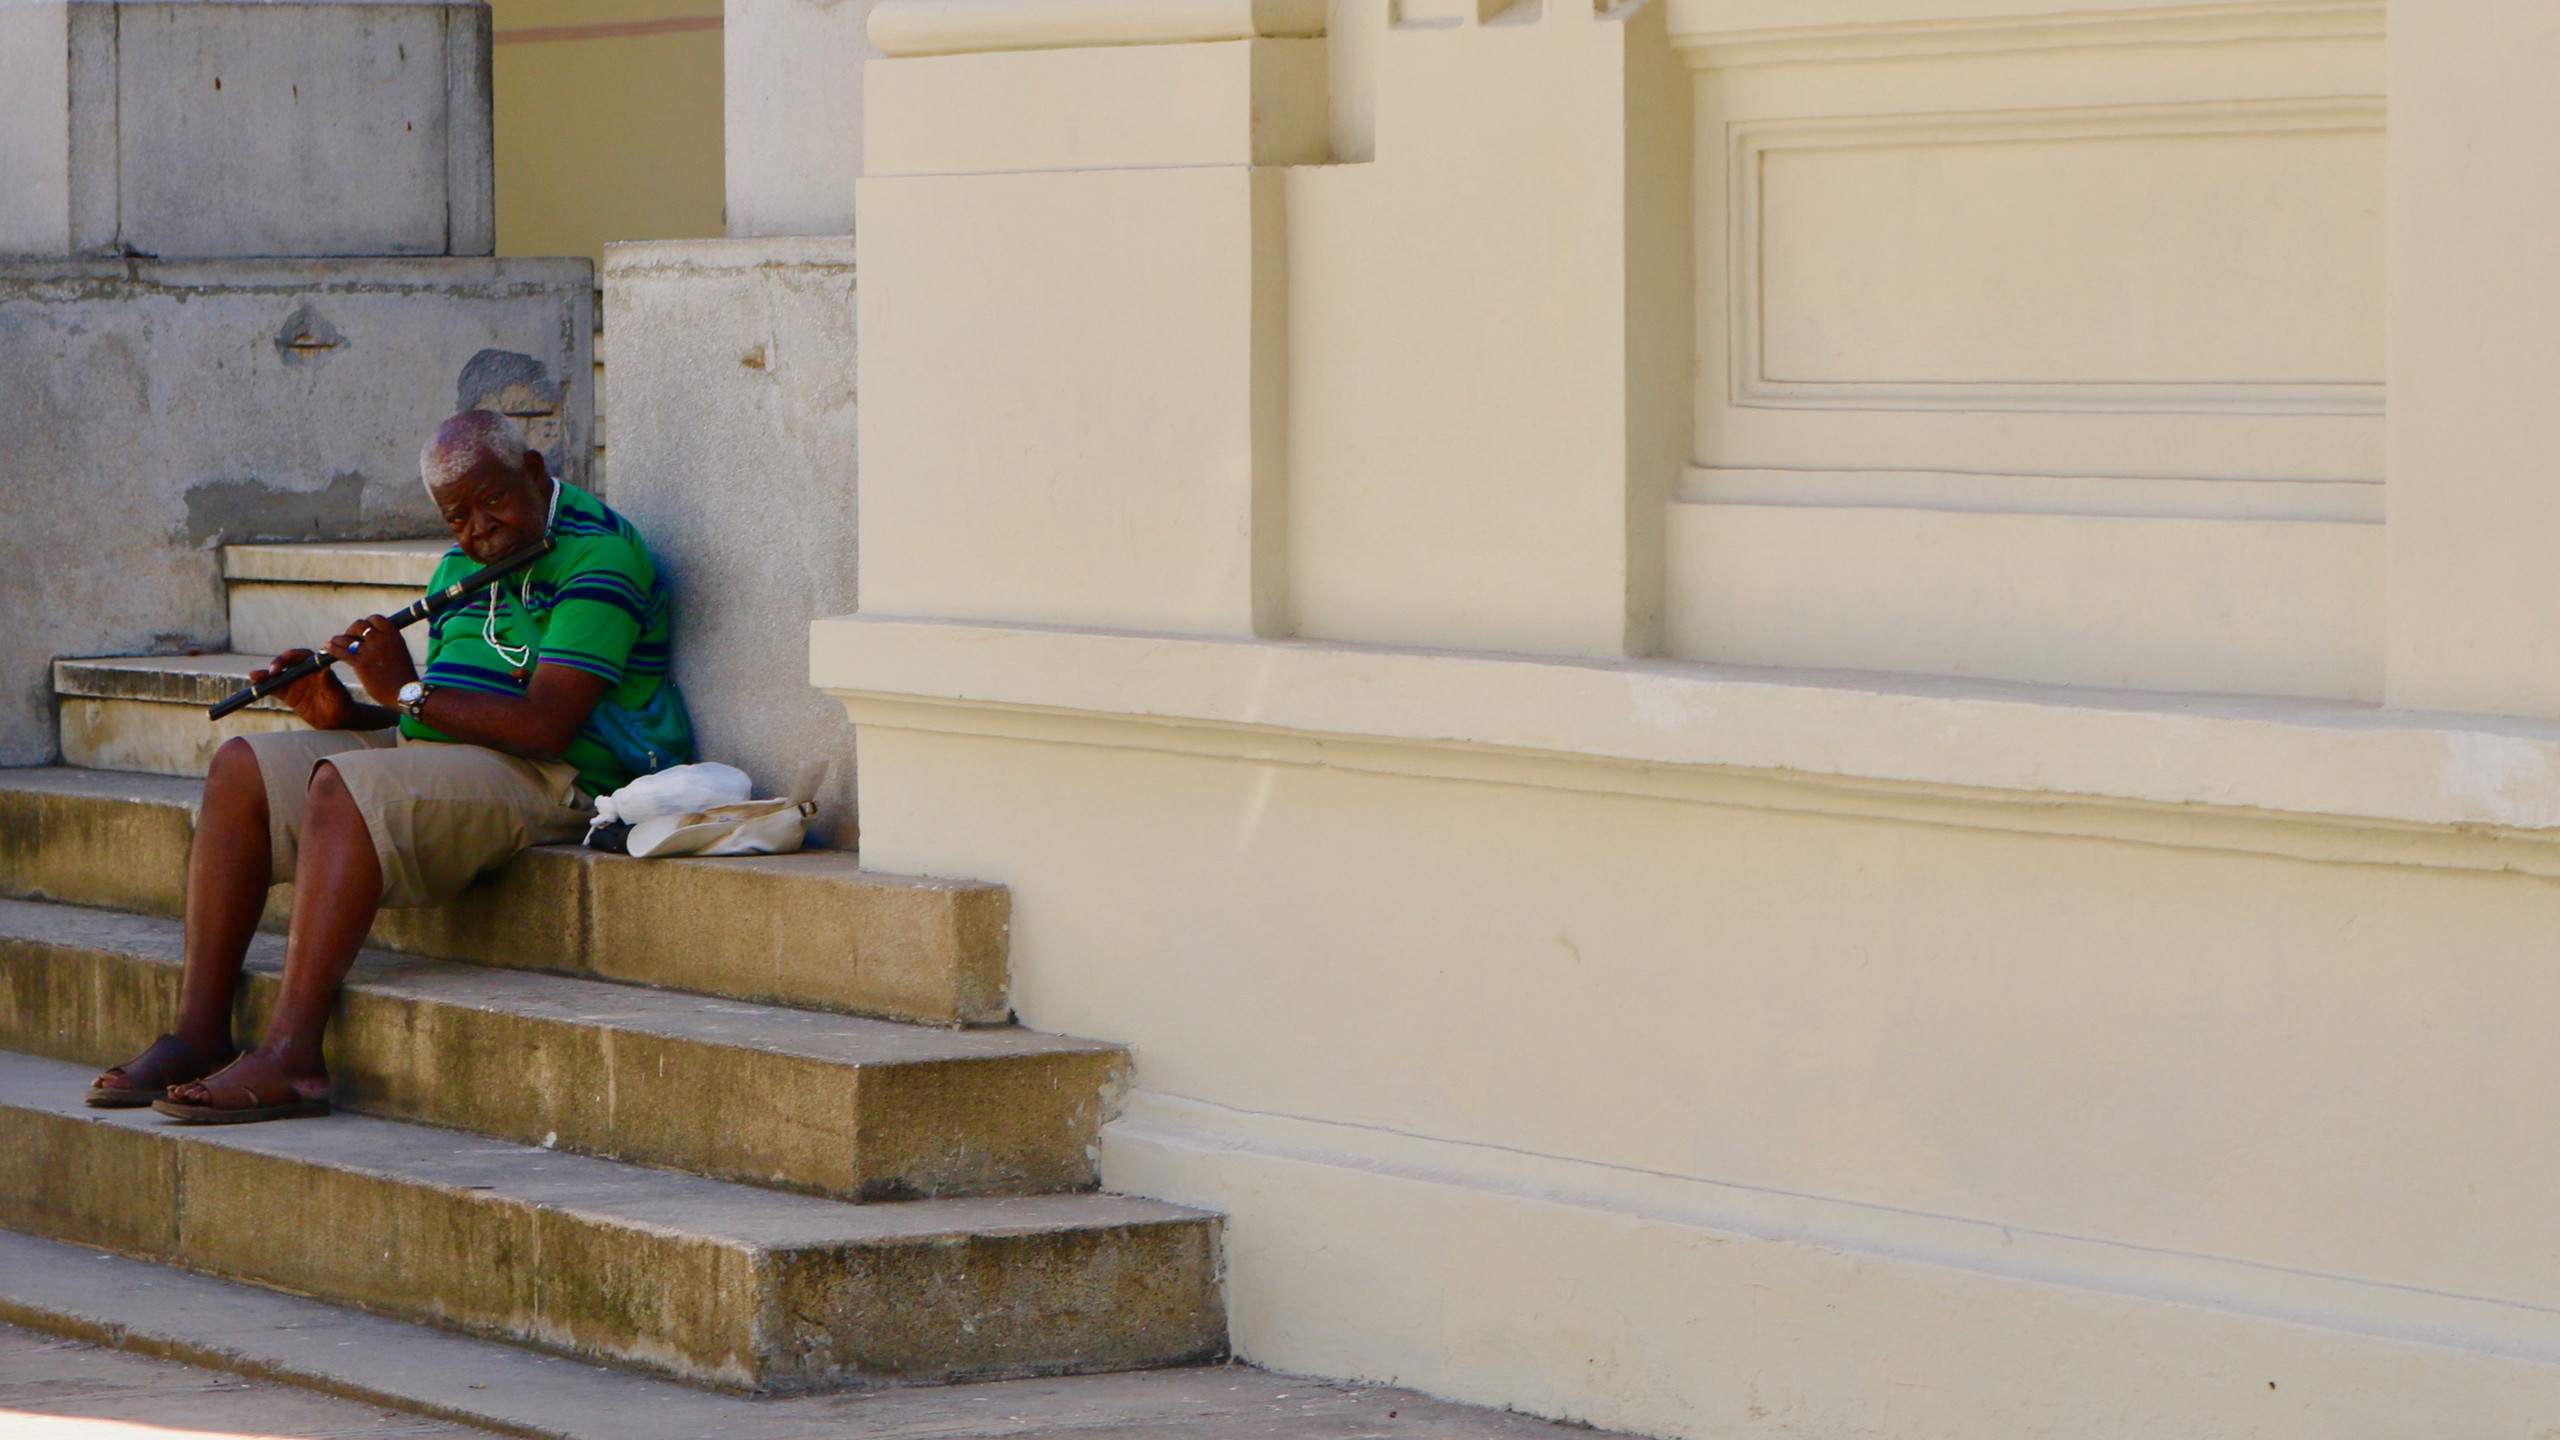 Old Cuban man in a green shirt and khaki shorts sitting on steps and playing a flute in Old Havana.